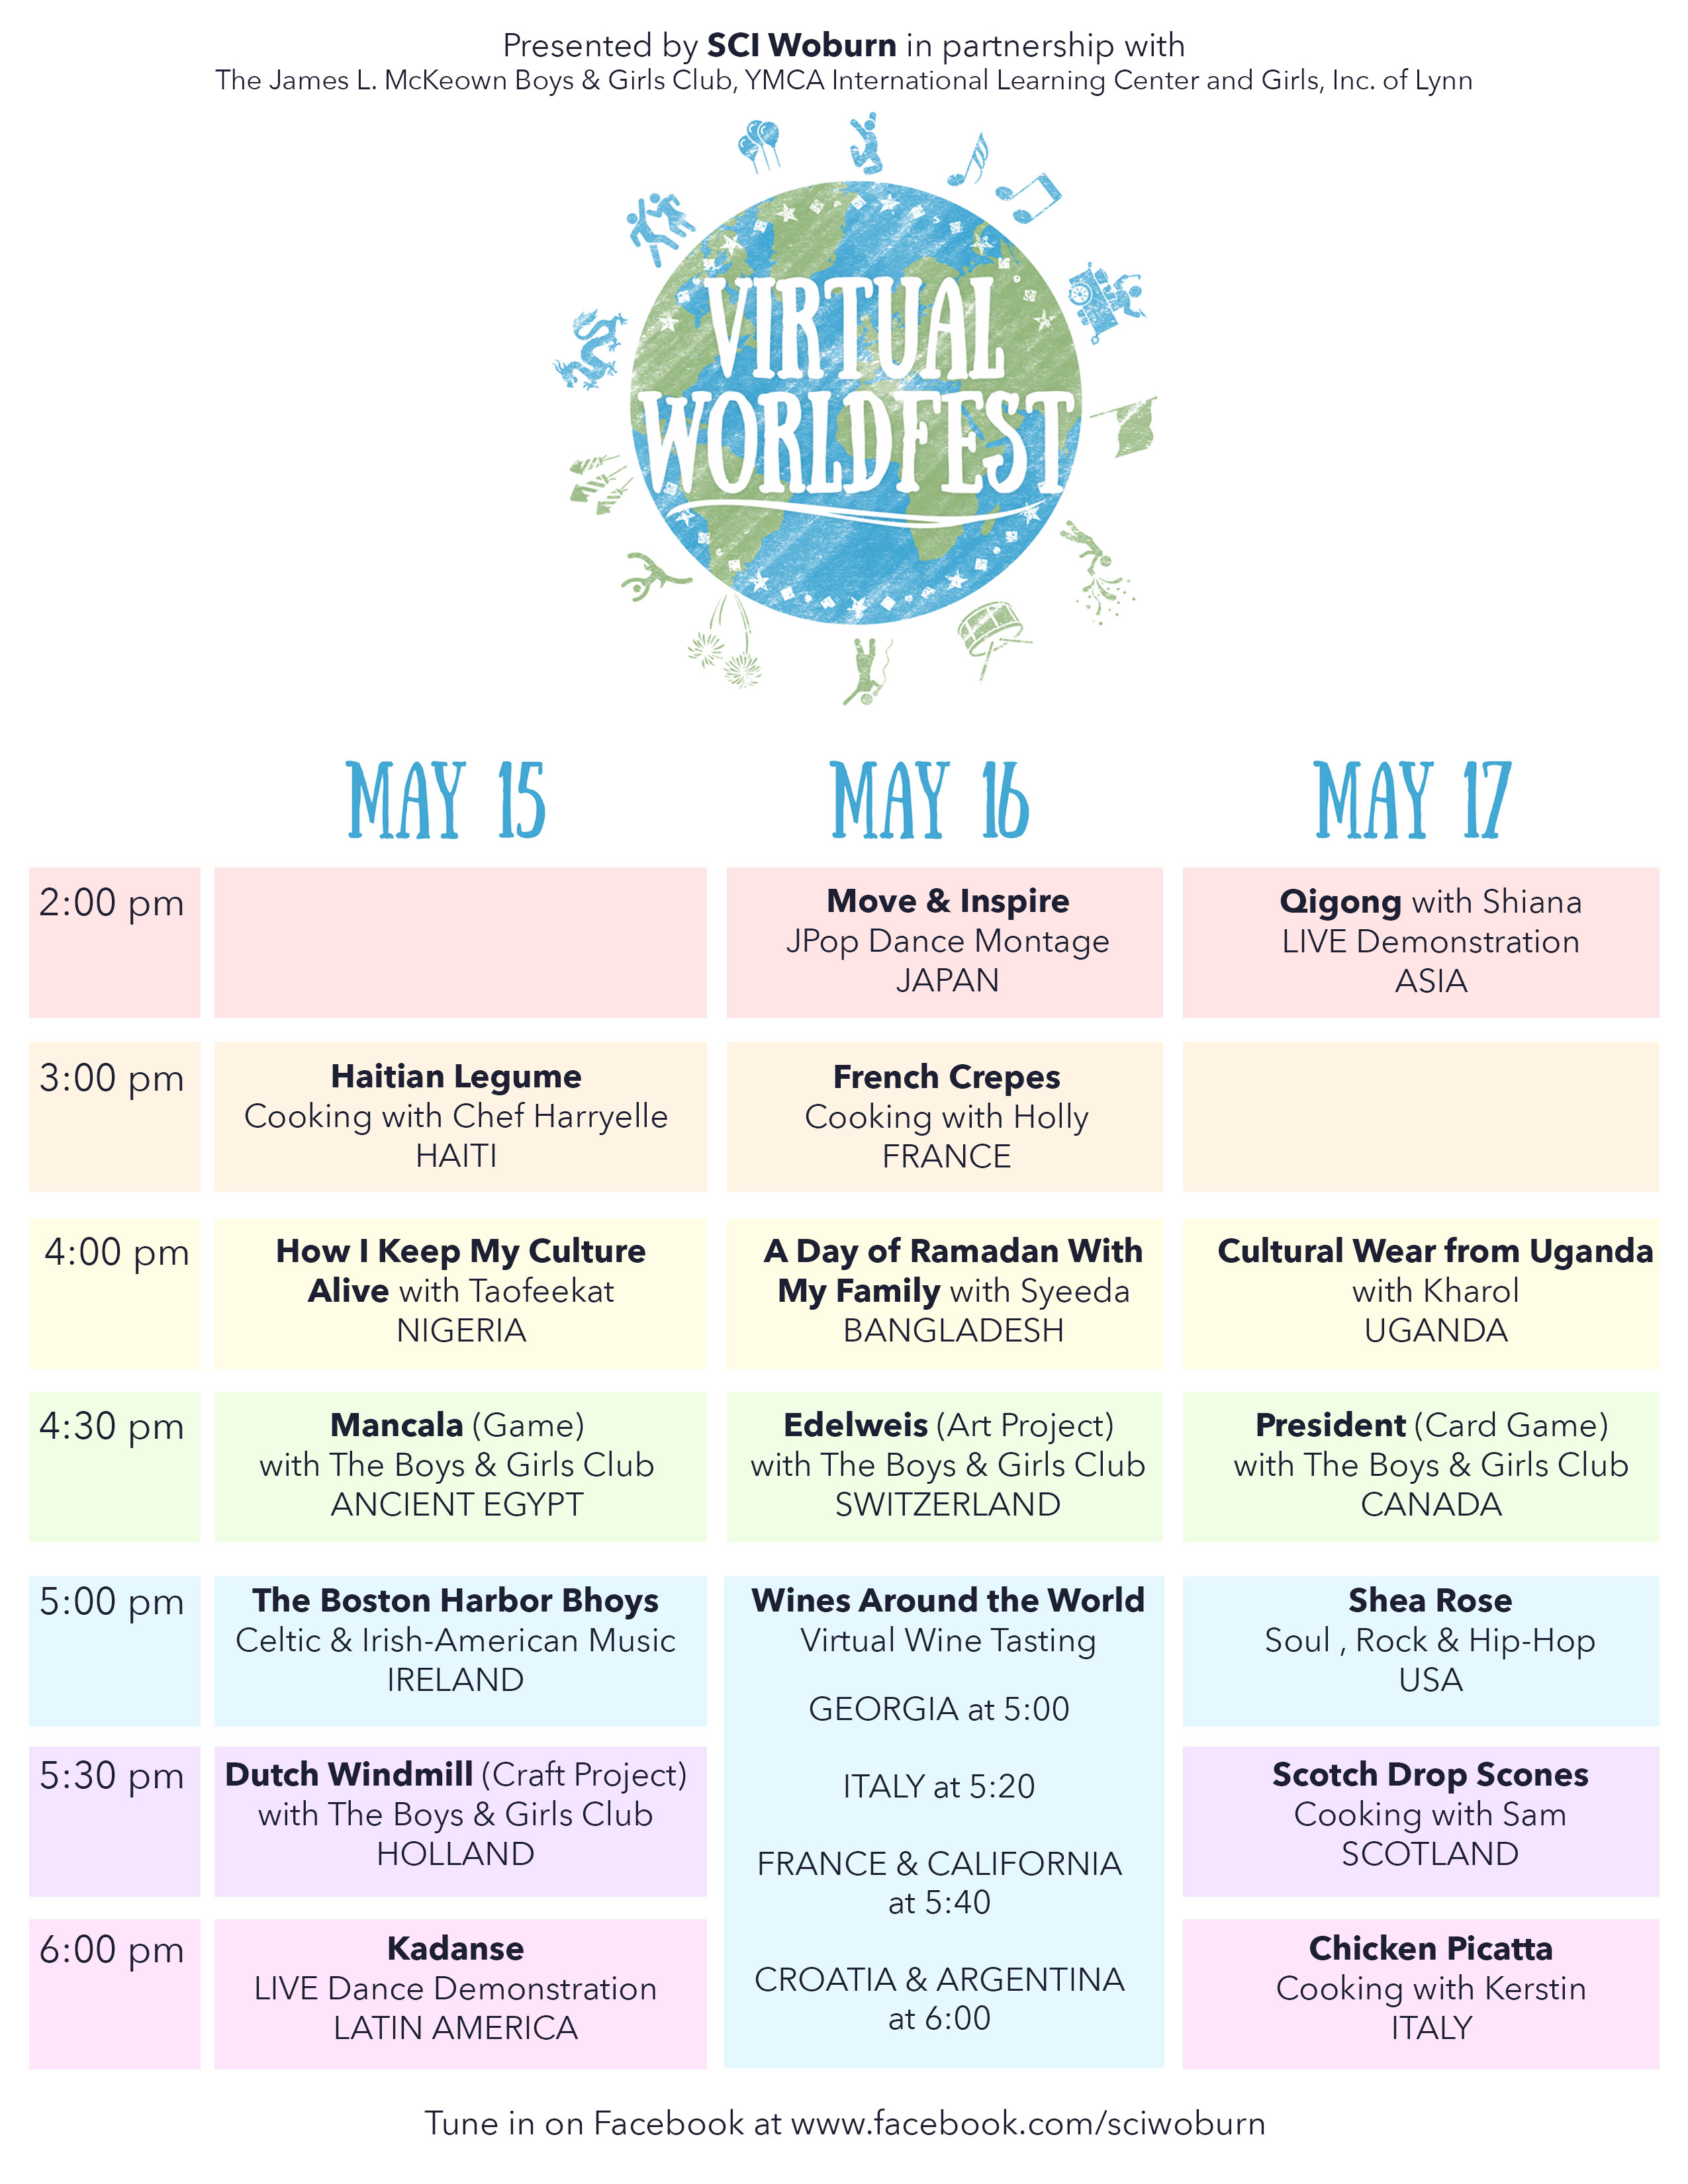 Virtual Worldfest 2020 Schedule